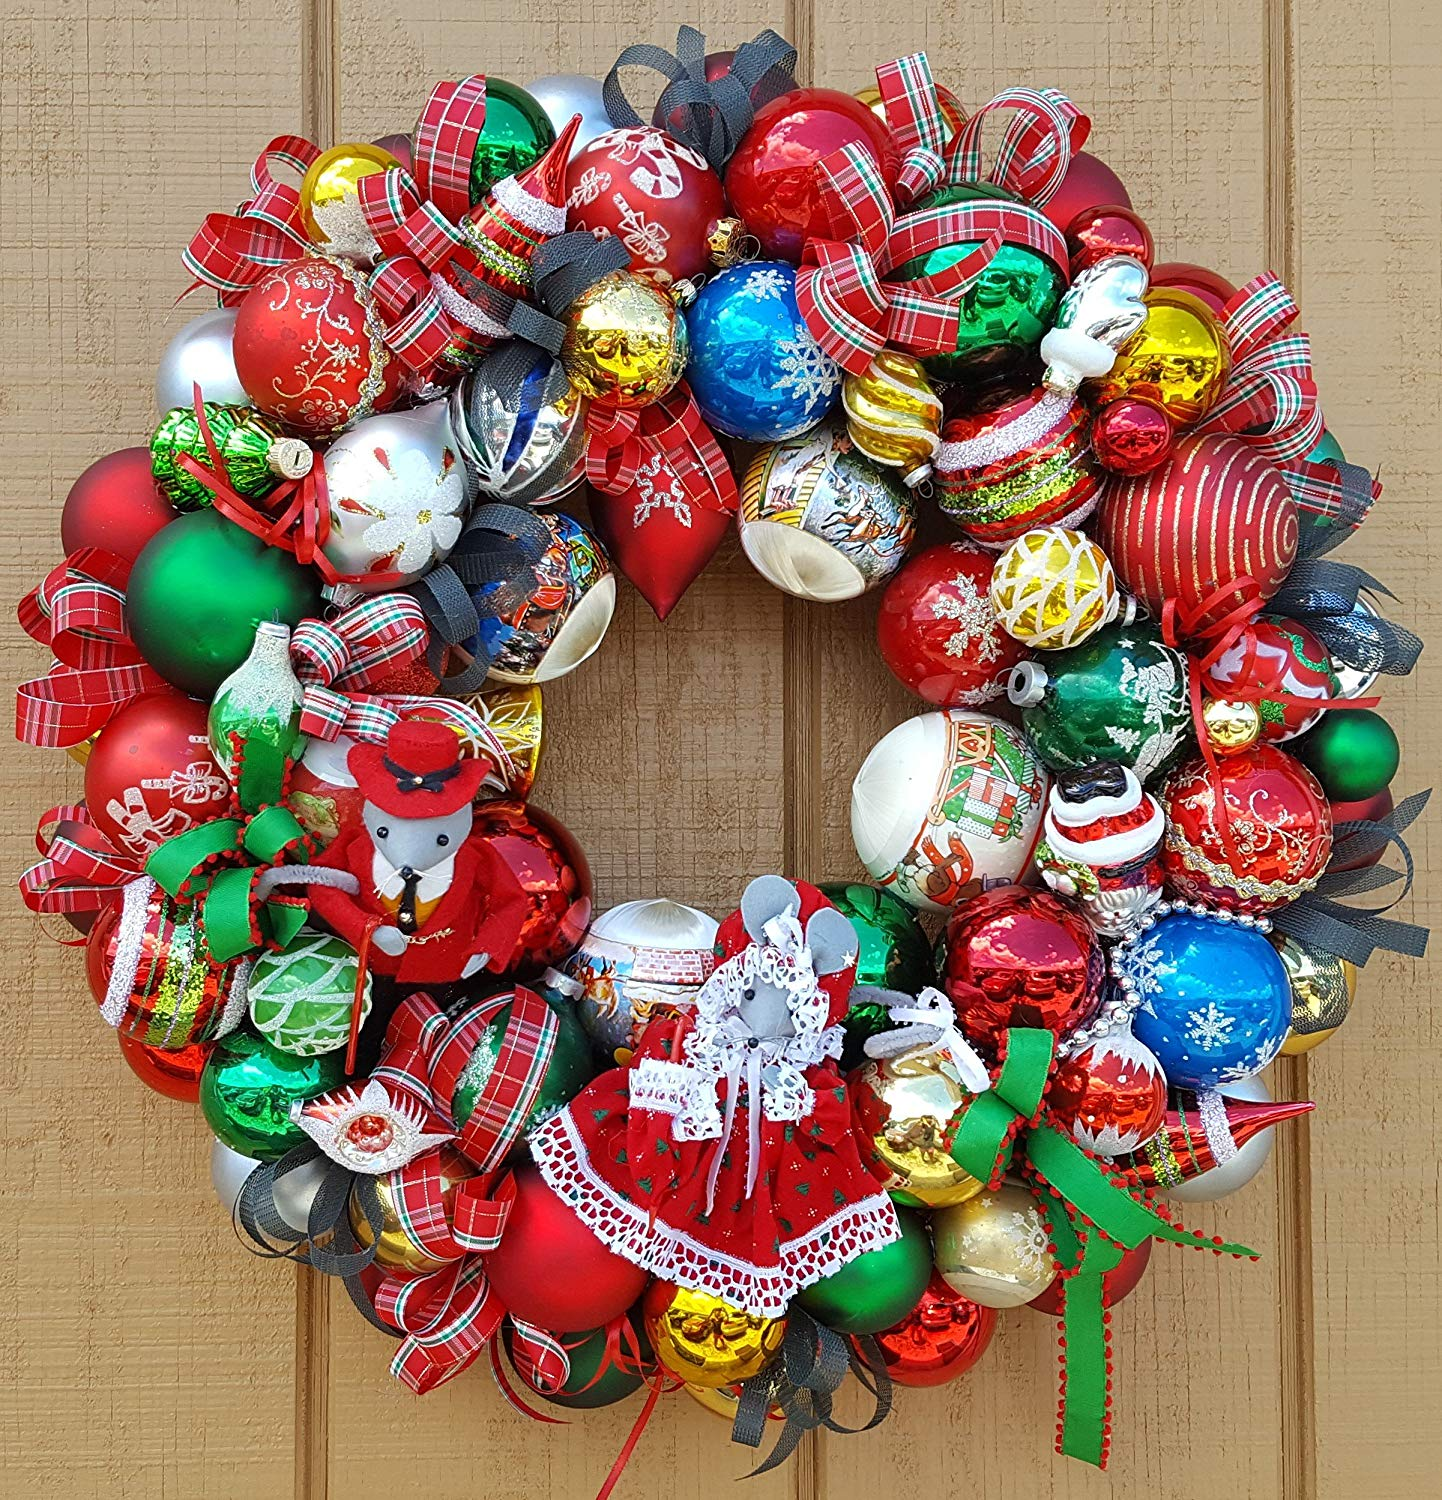 Buy 22 Vintage Glass Christmas Ornament Wreath Hand Crafted Mr